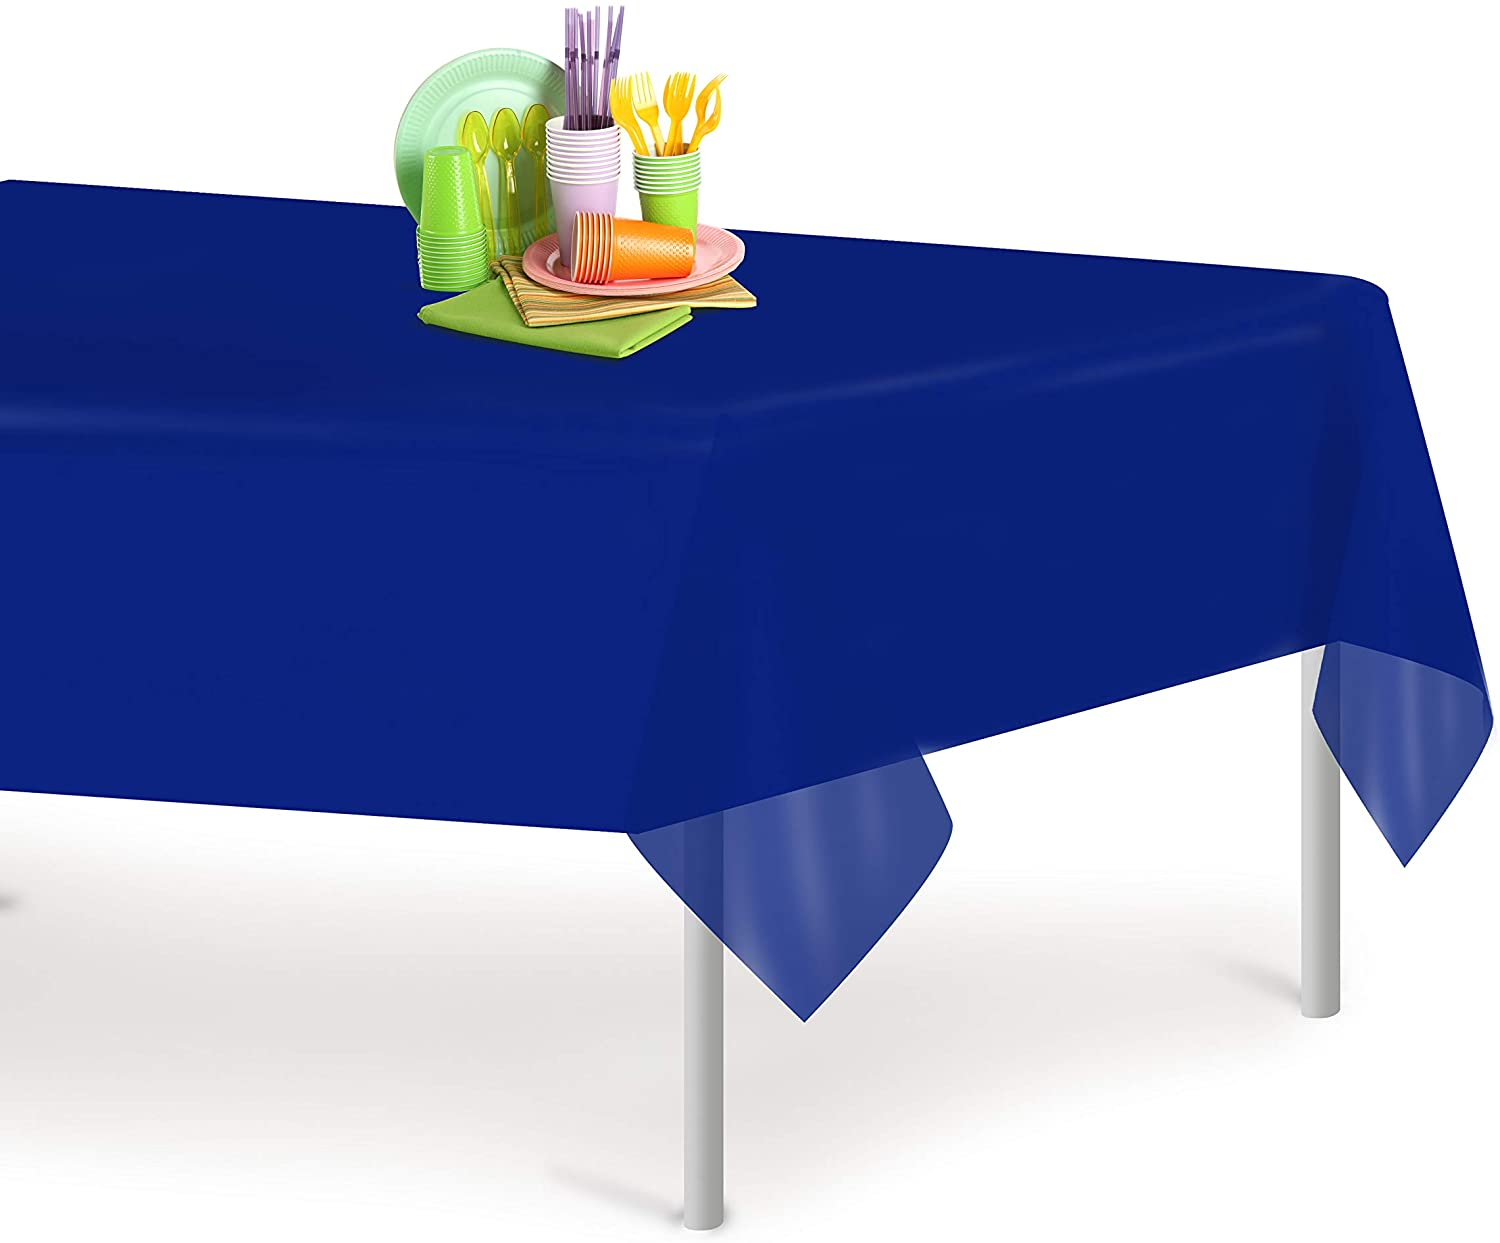 Navy Blue 6 Pack Premium Disposable Plastic Tablecloth 54 Inch. x 108 Inch. Rectangle Table Cover By Grandipity